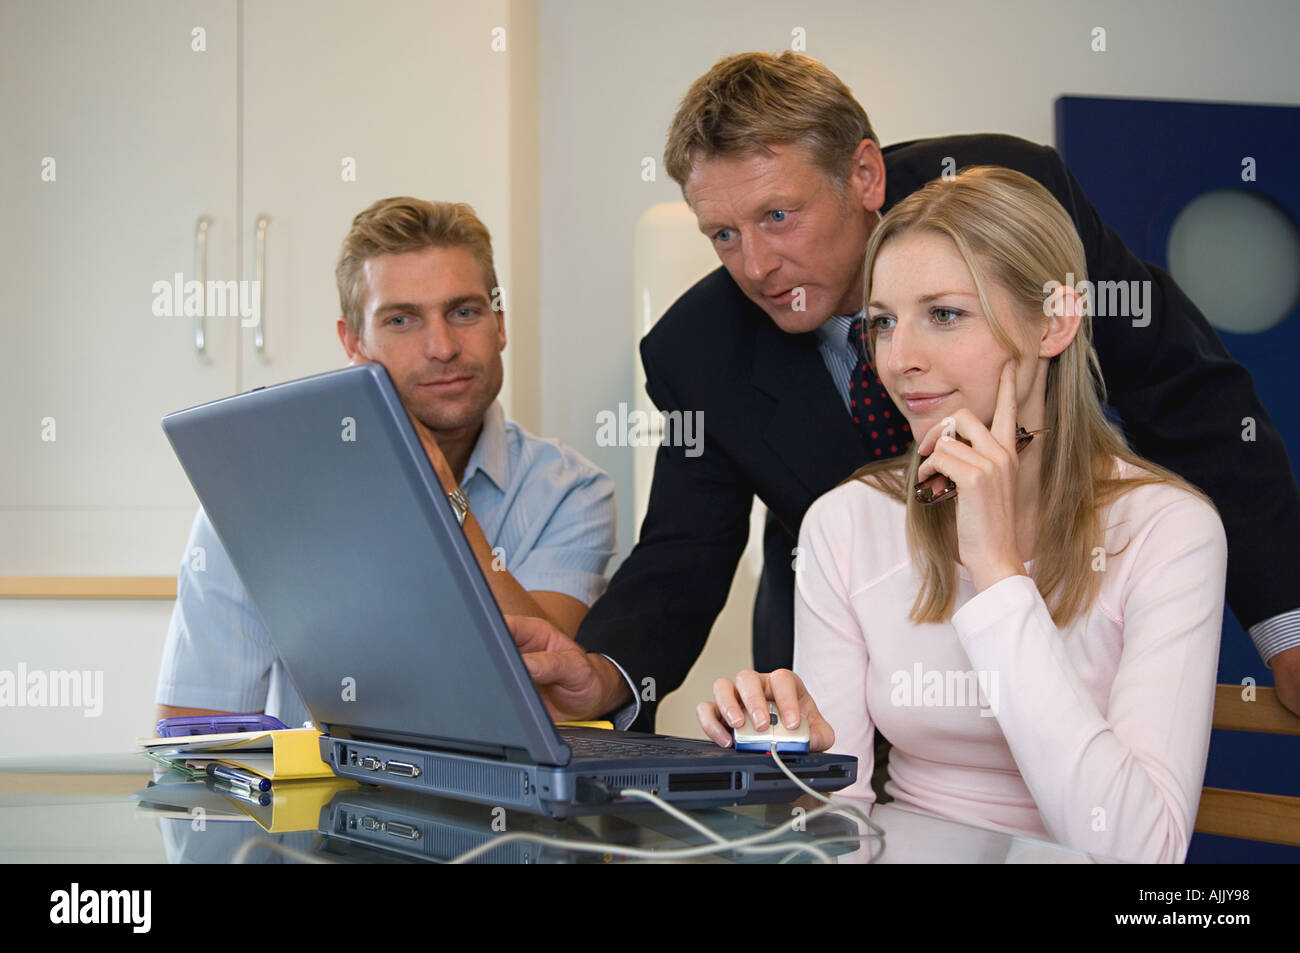 Couple meet with financial adviser - Stock Image